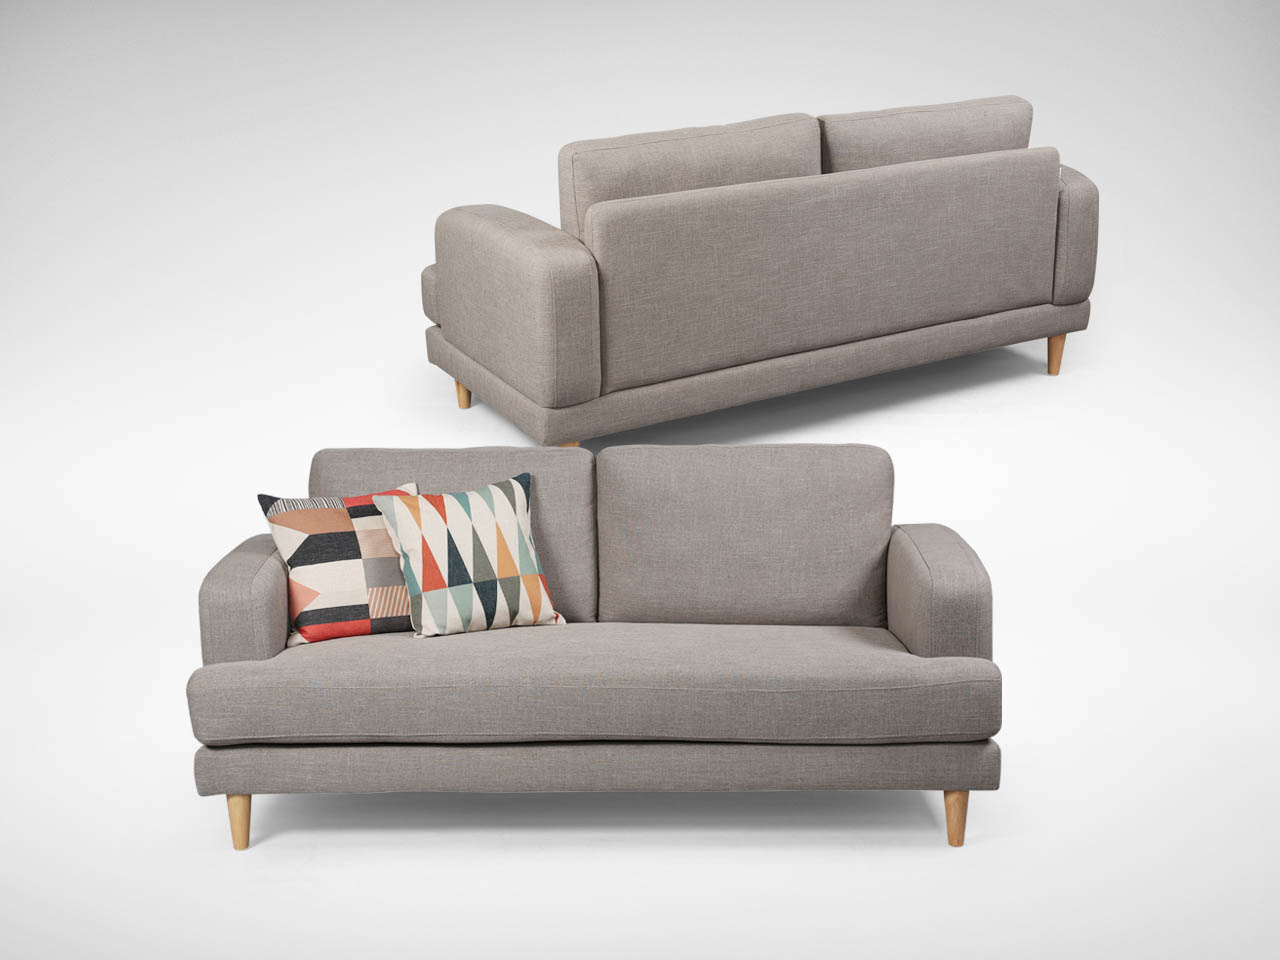 Aiden 3–Seater Sofa | Comfort Design – The Chair & Table People With Aidan Ii Sofa Chairs (Image 15 of 20)